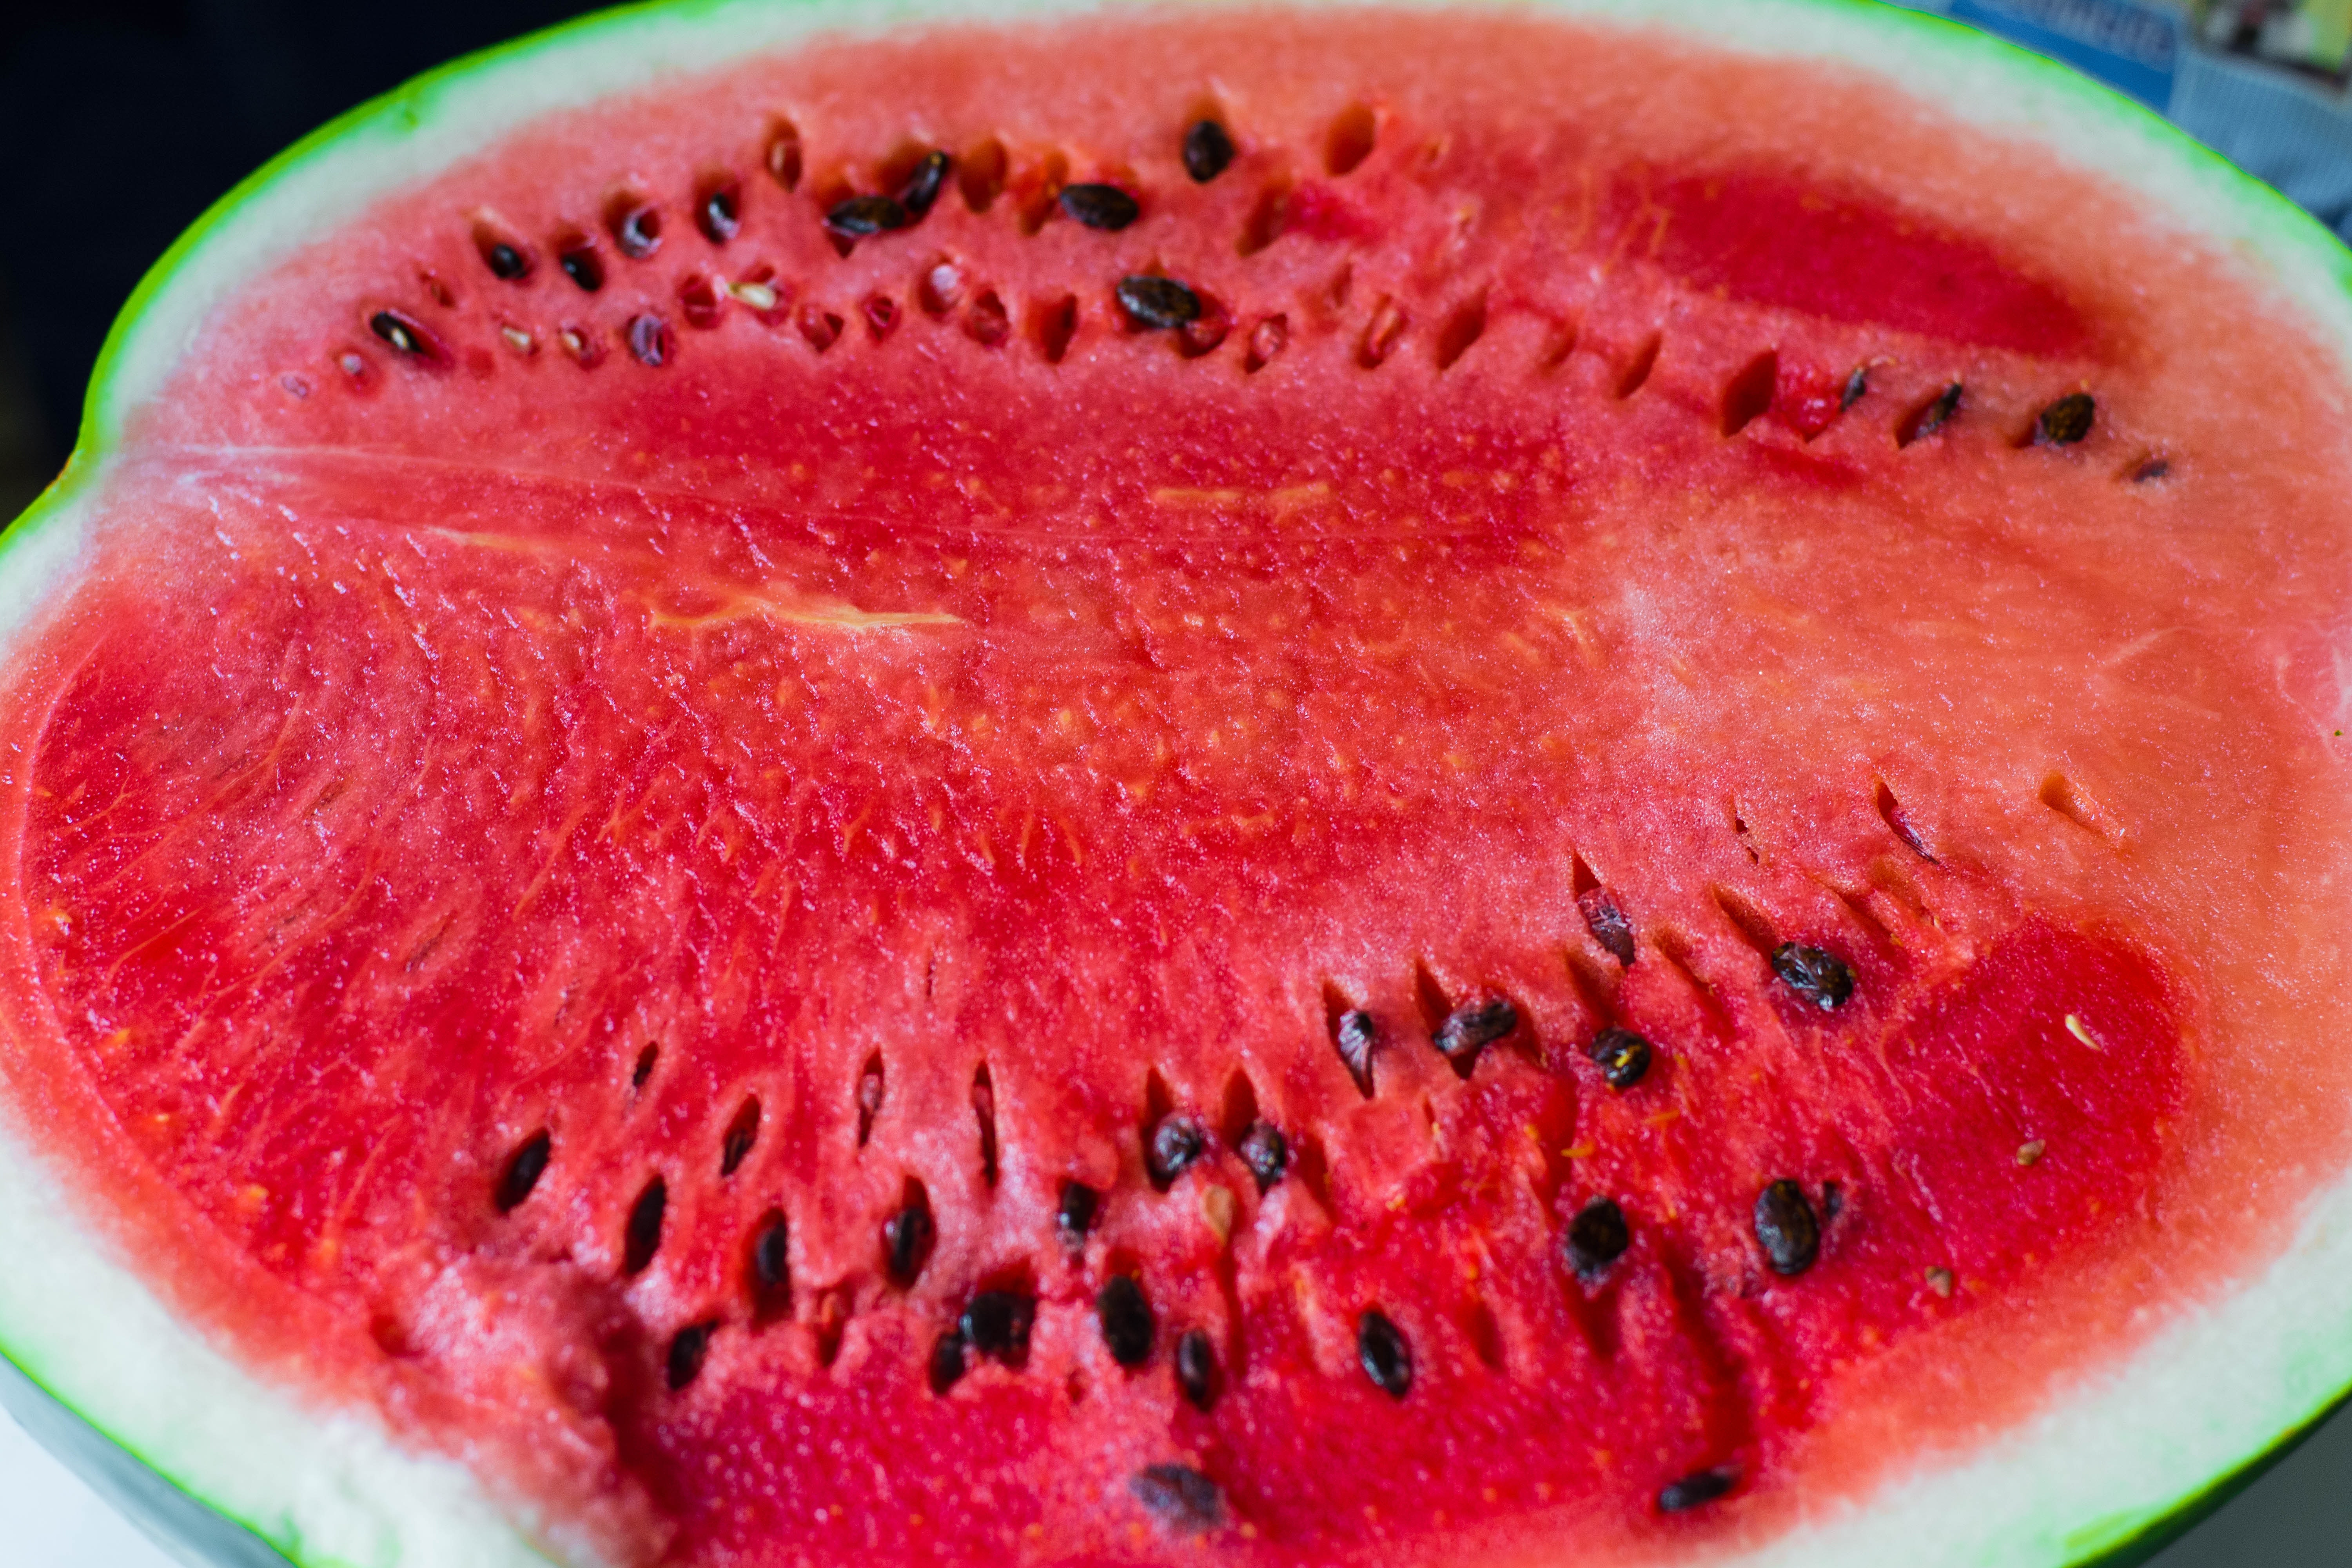 Sex with a watermelon